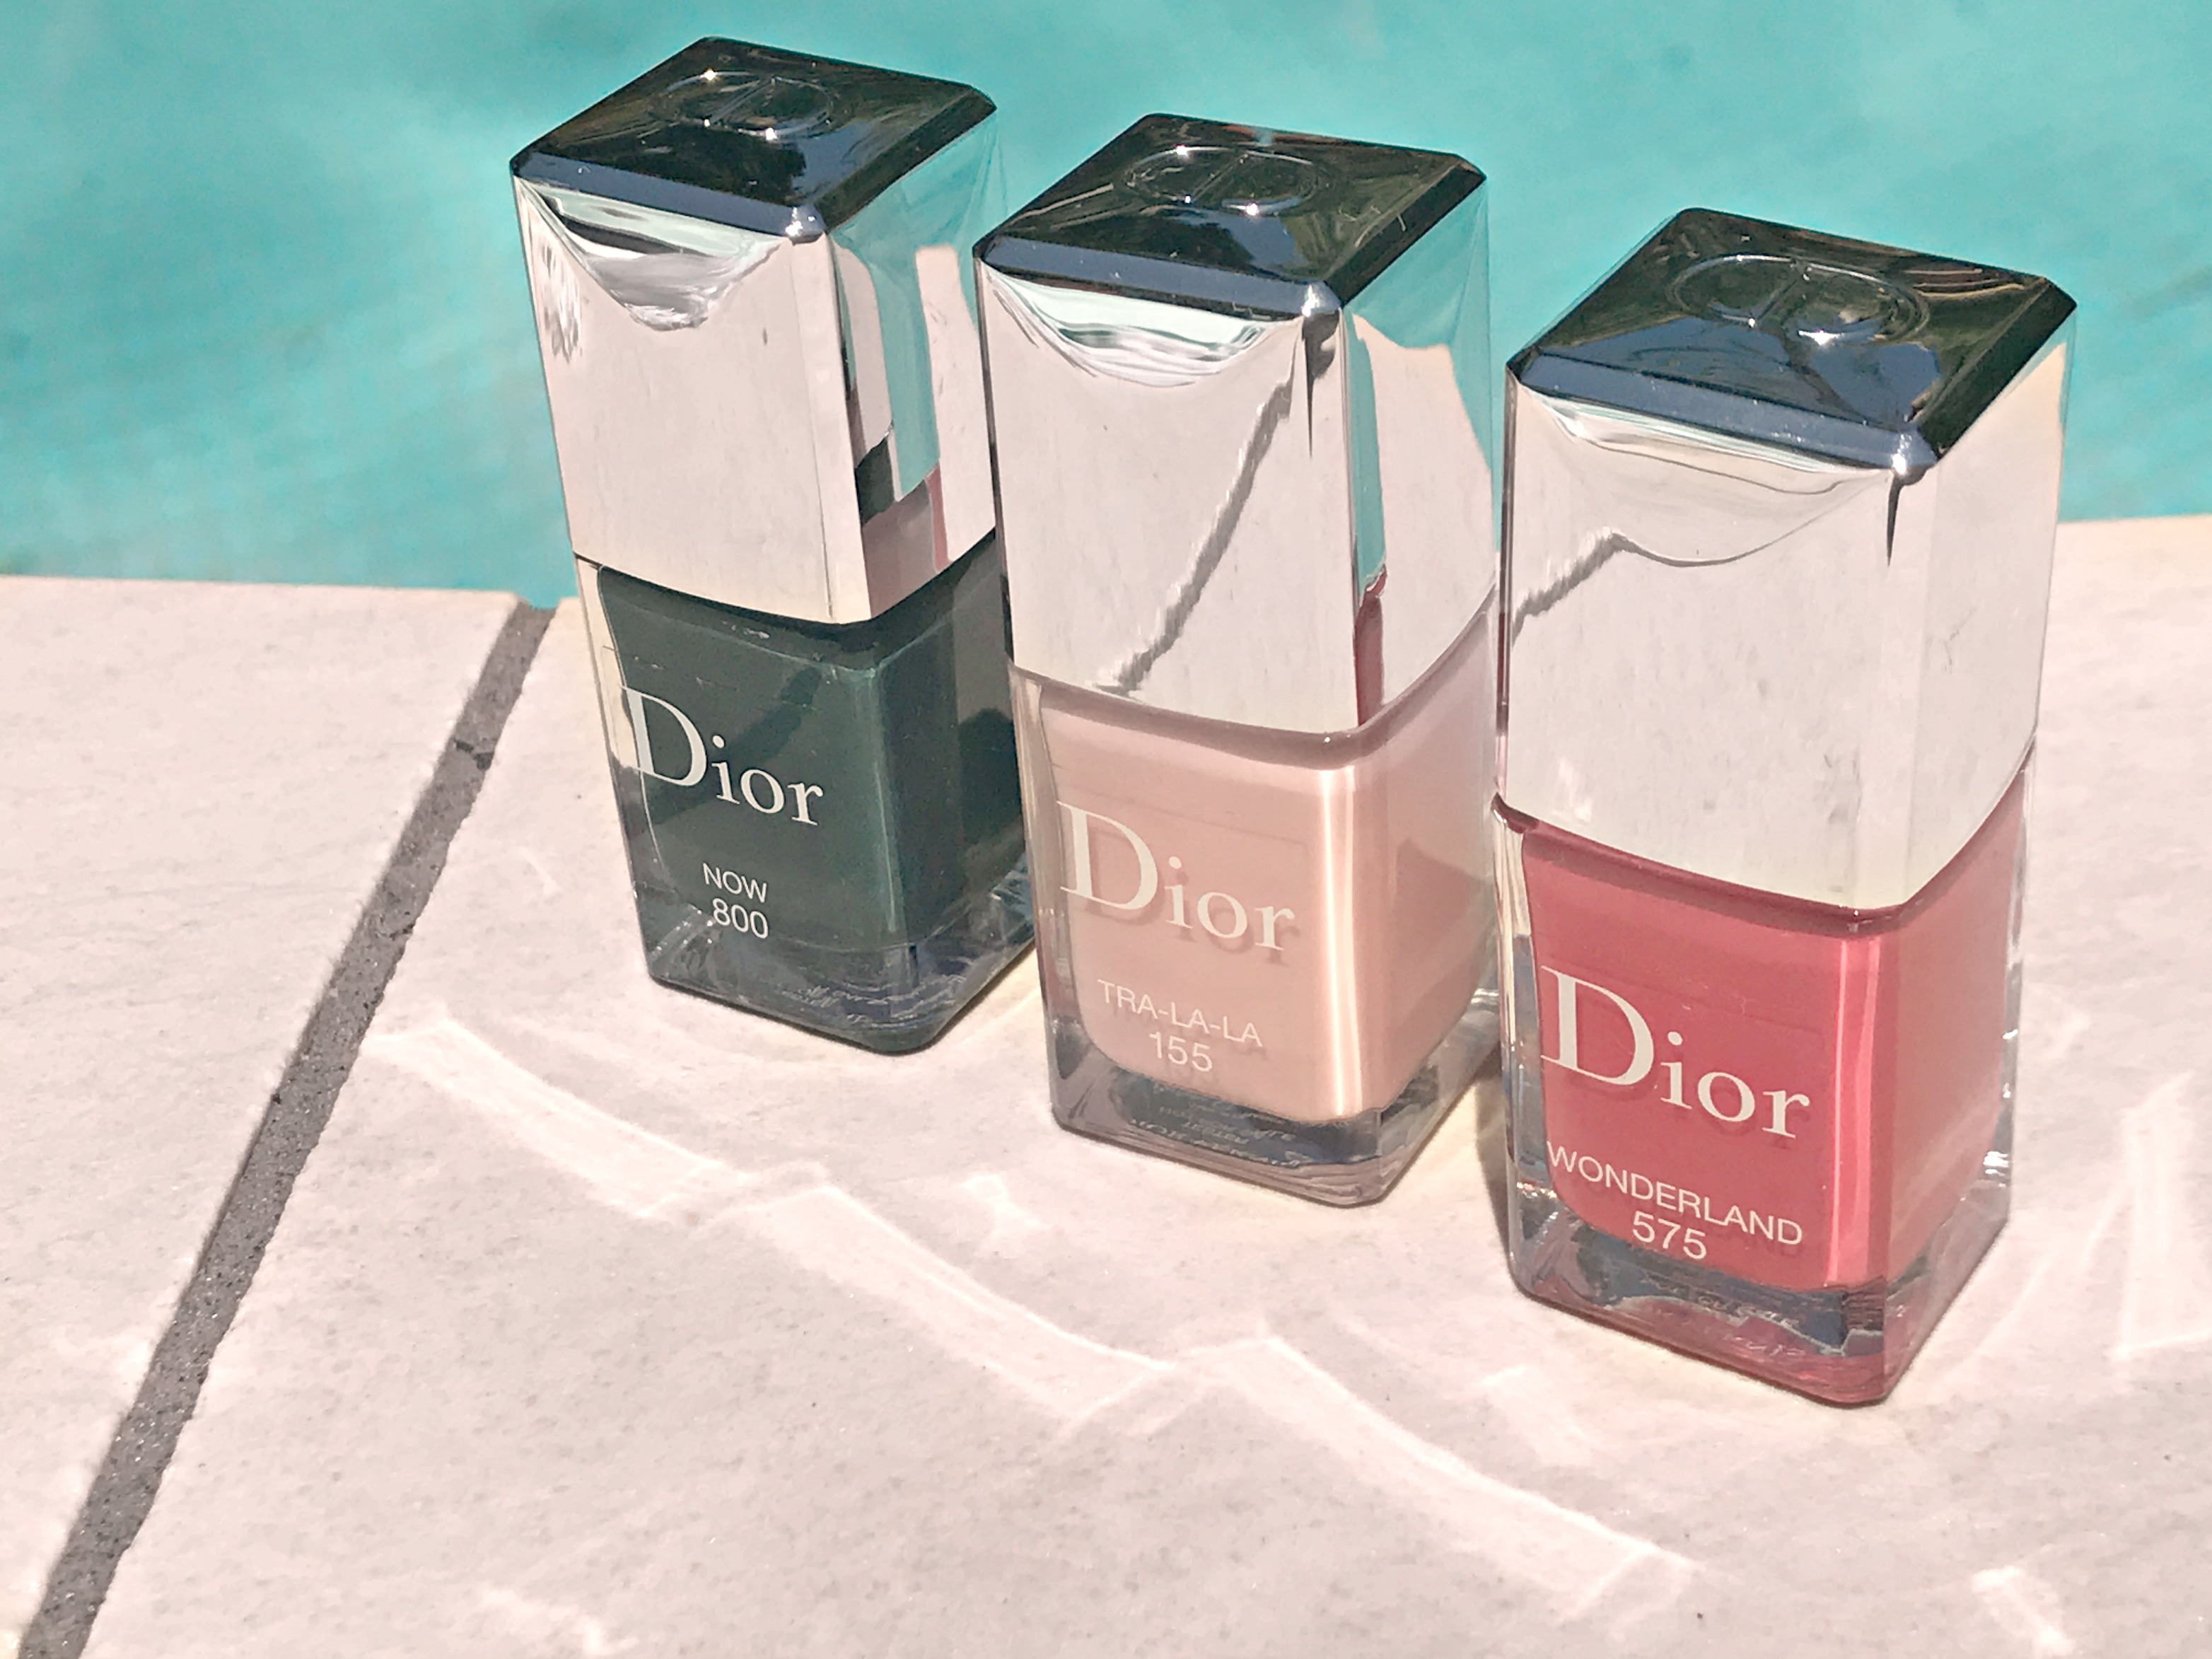 dior california, make up estate 2017, come truccarsi estate 2017, rossetti dior 2017, profumi estivi buoni 2017, profumi dior più buoni, theladycracy.it, elisa bellino, fashion blog più seguiti 2017, blogger moda 2017, blog italia 2017, blogger moda famose 2017, blogger moda più seguite 2017, fashion blogger milano 2017,